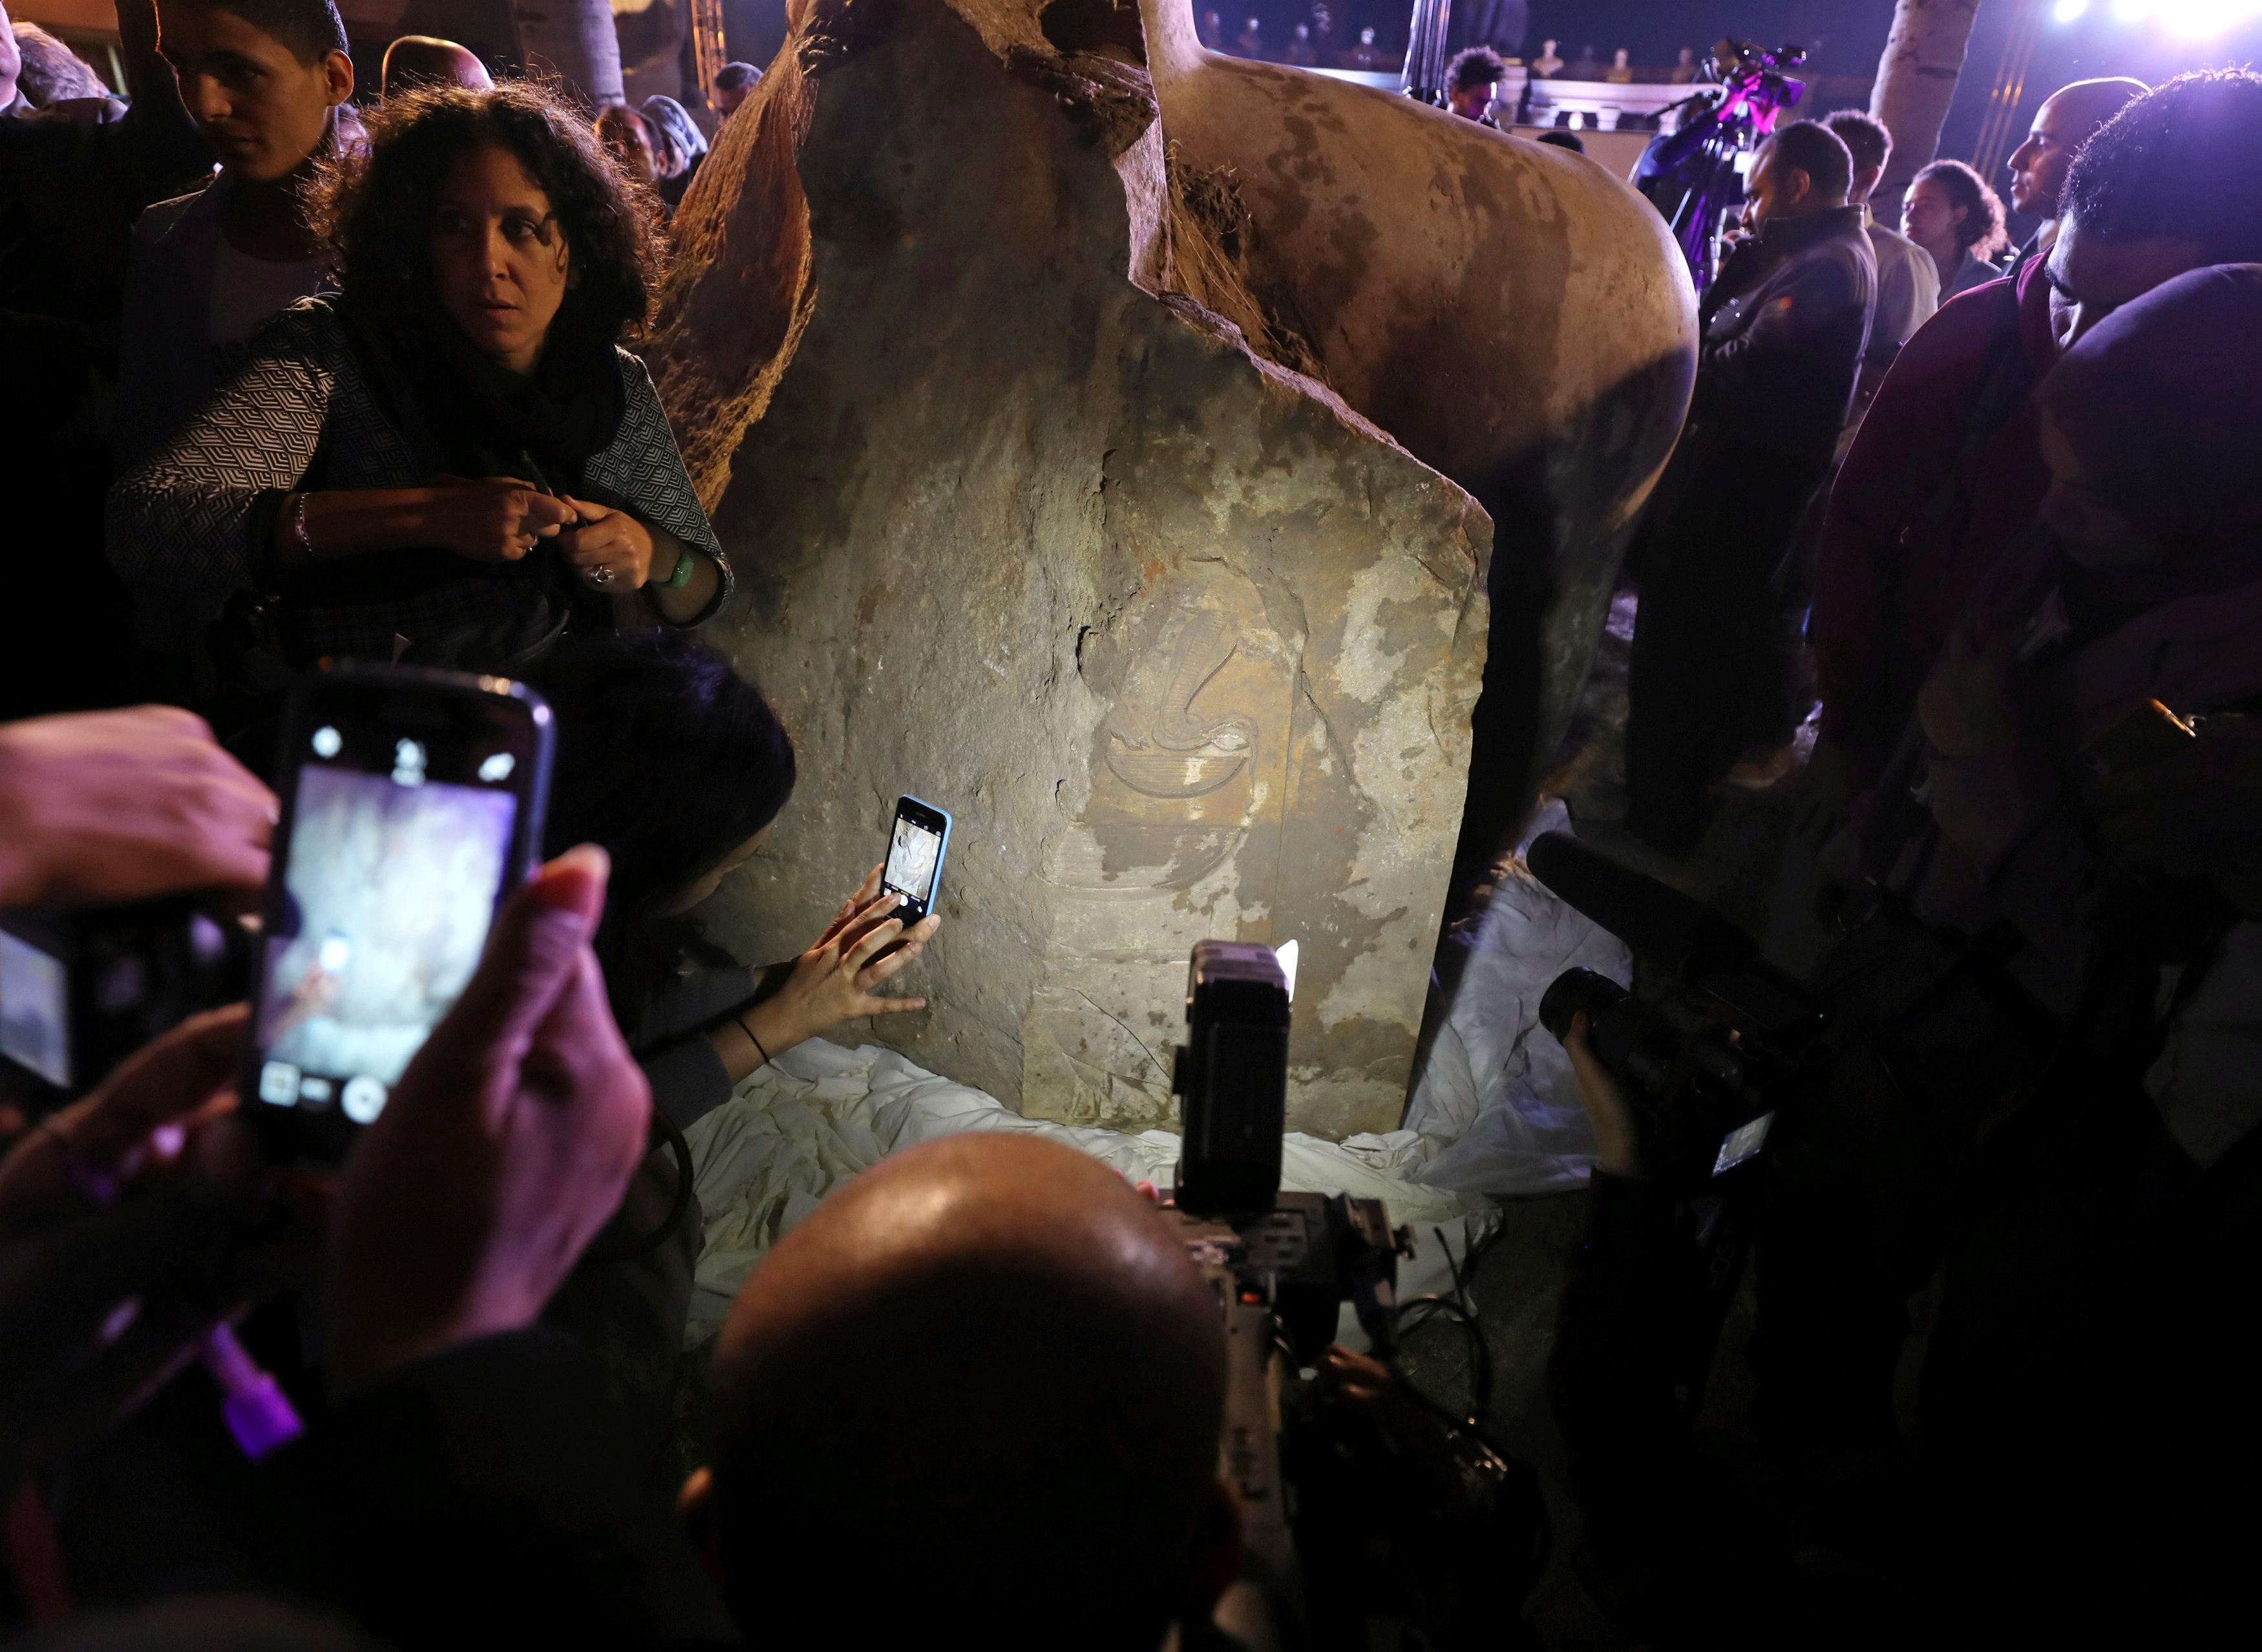 Crowd of onlookers observes a recently disocvered colosus now believed to be of Psammetich I in Cairo, Egypt, March 16, 2017. Credit: Mohamed Abd El Ghany/Reuters